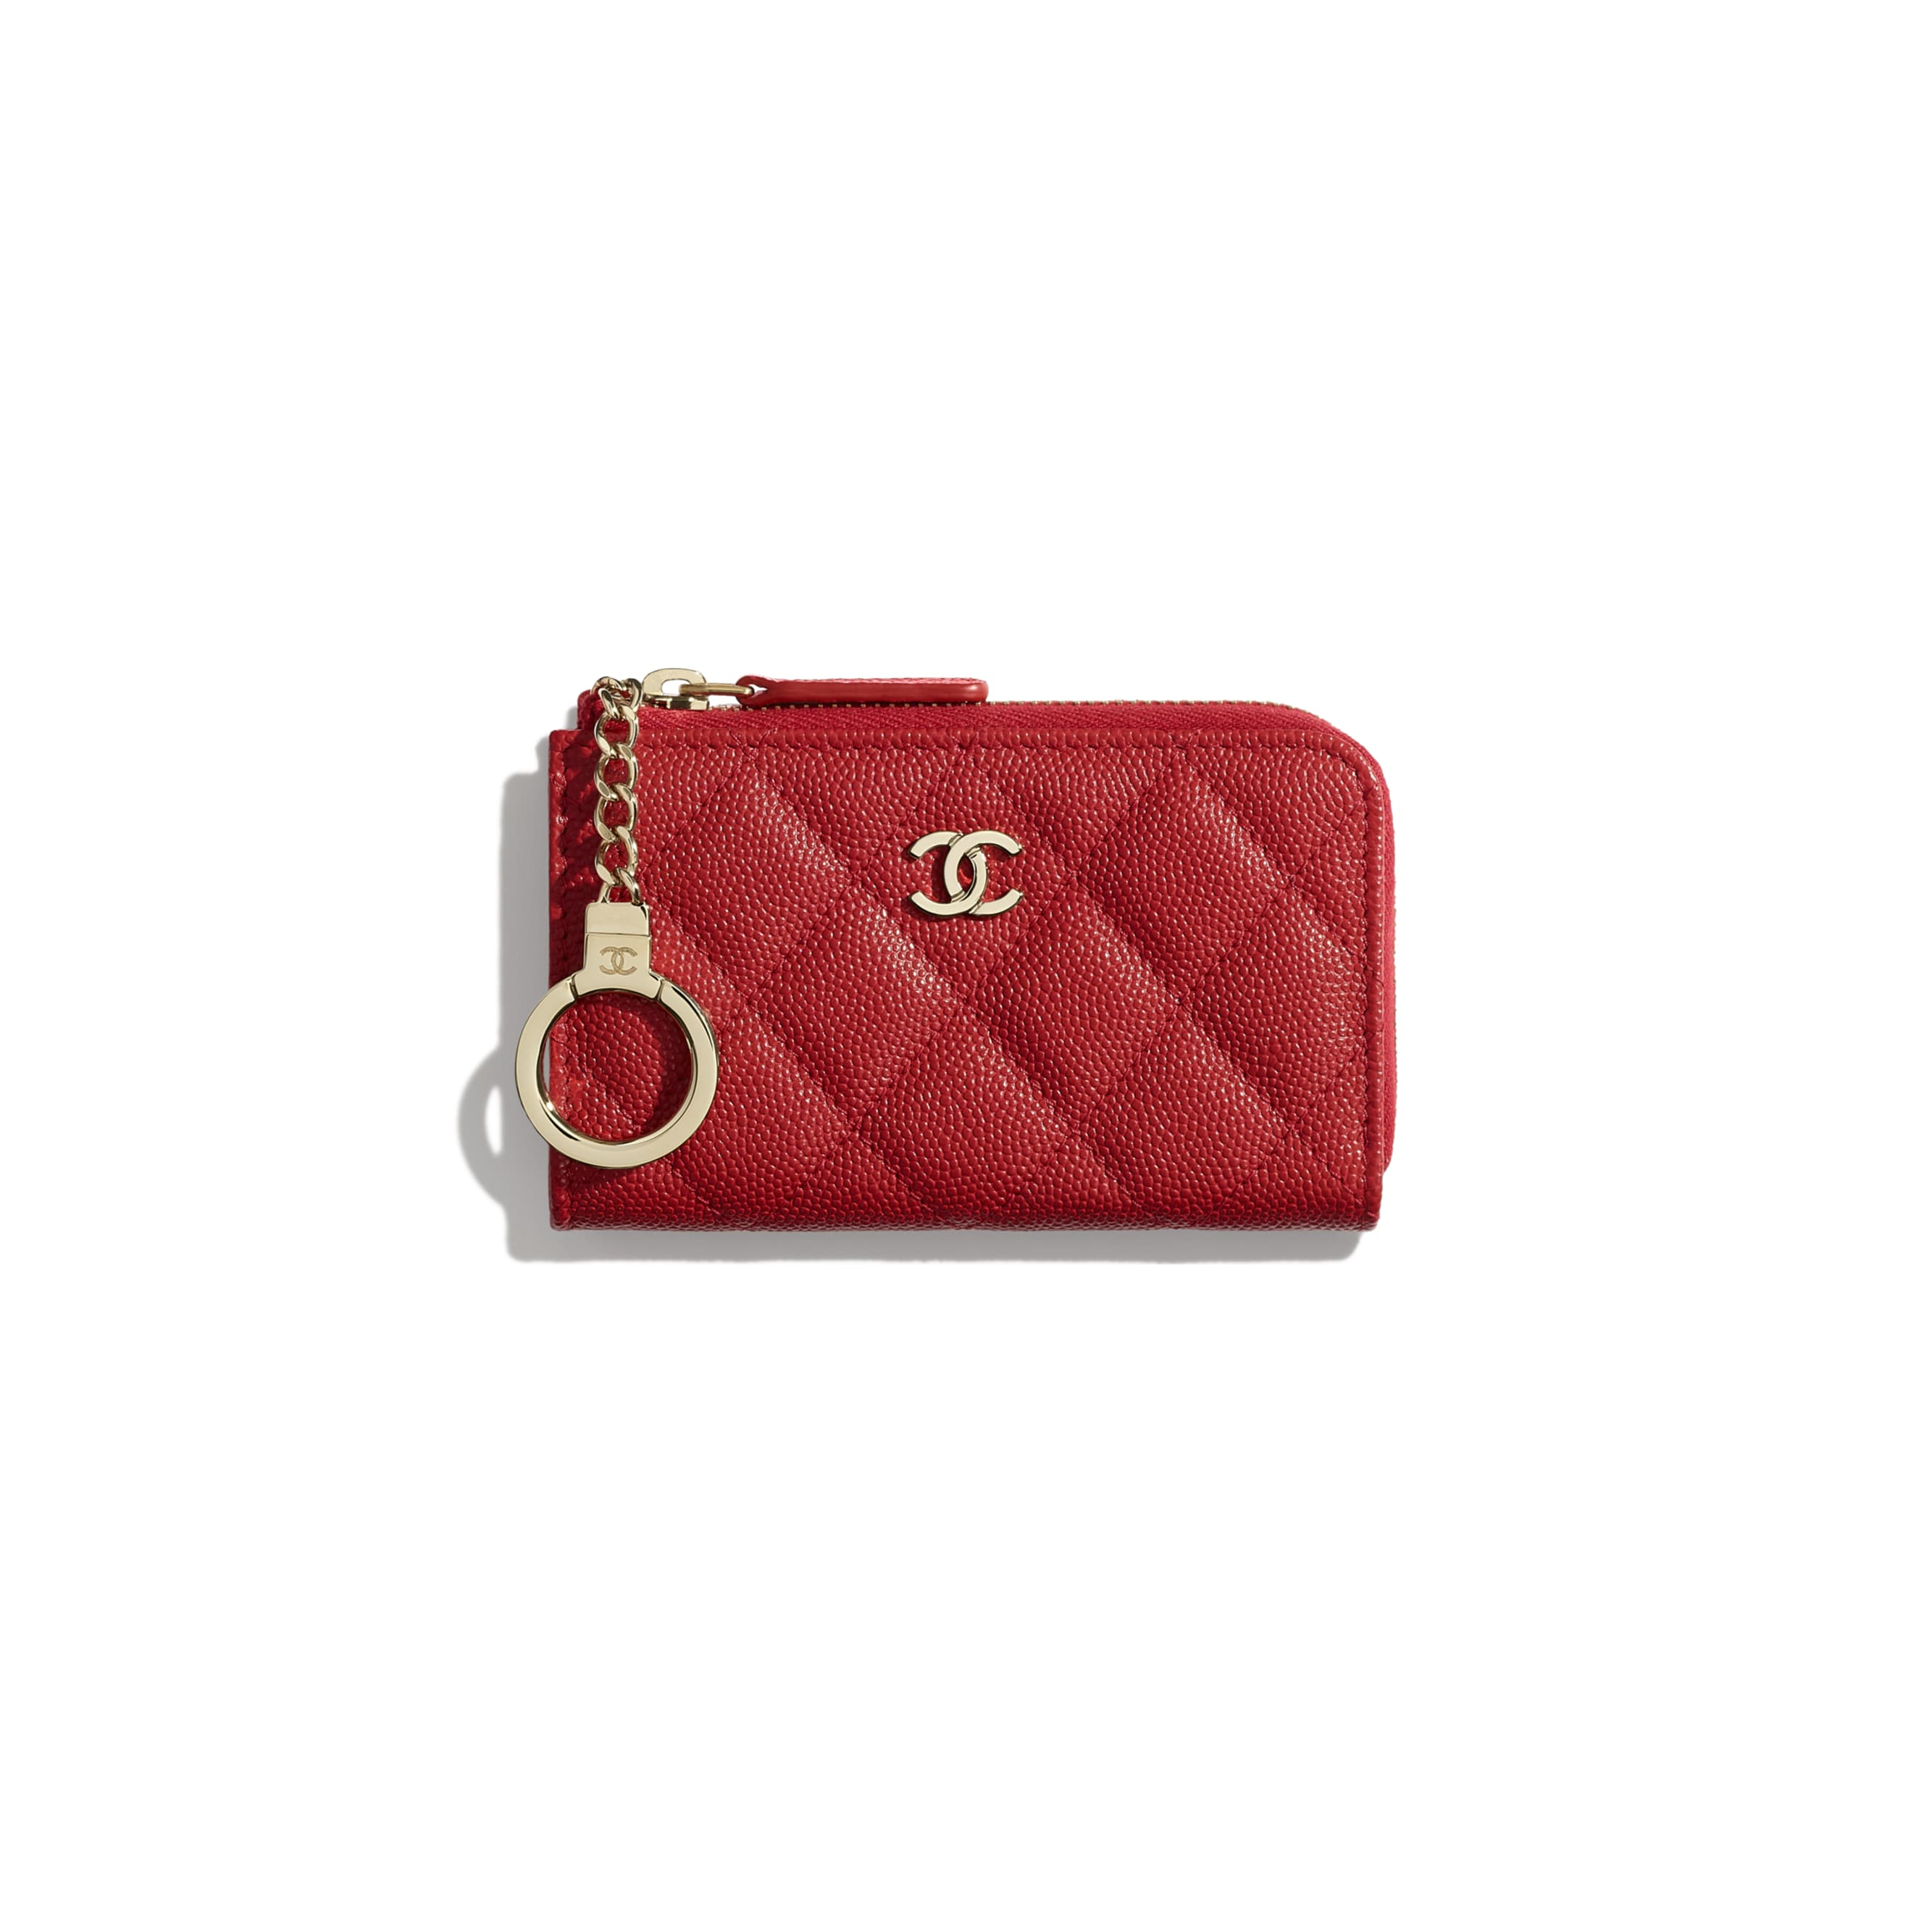 Classic Zipped Key Holder - Red - Grained Calfskin & Gold-Tone Metal - Default view - see standard sized version